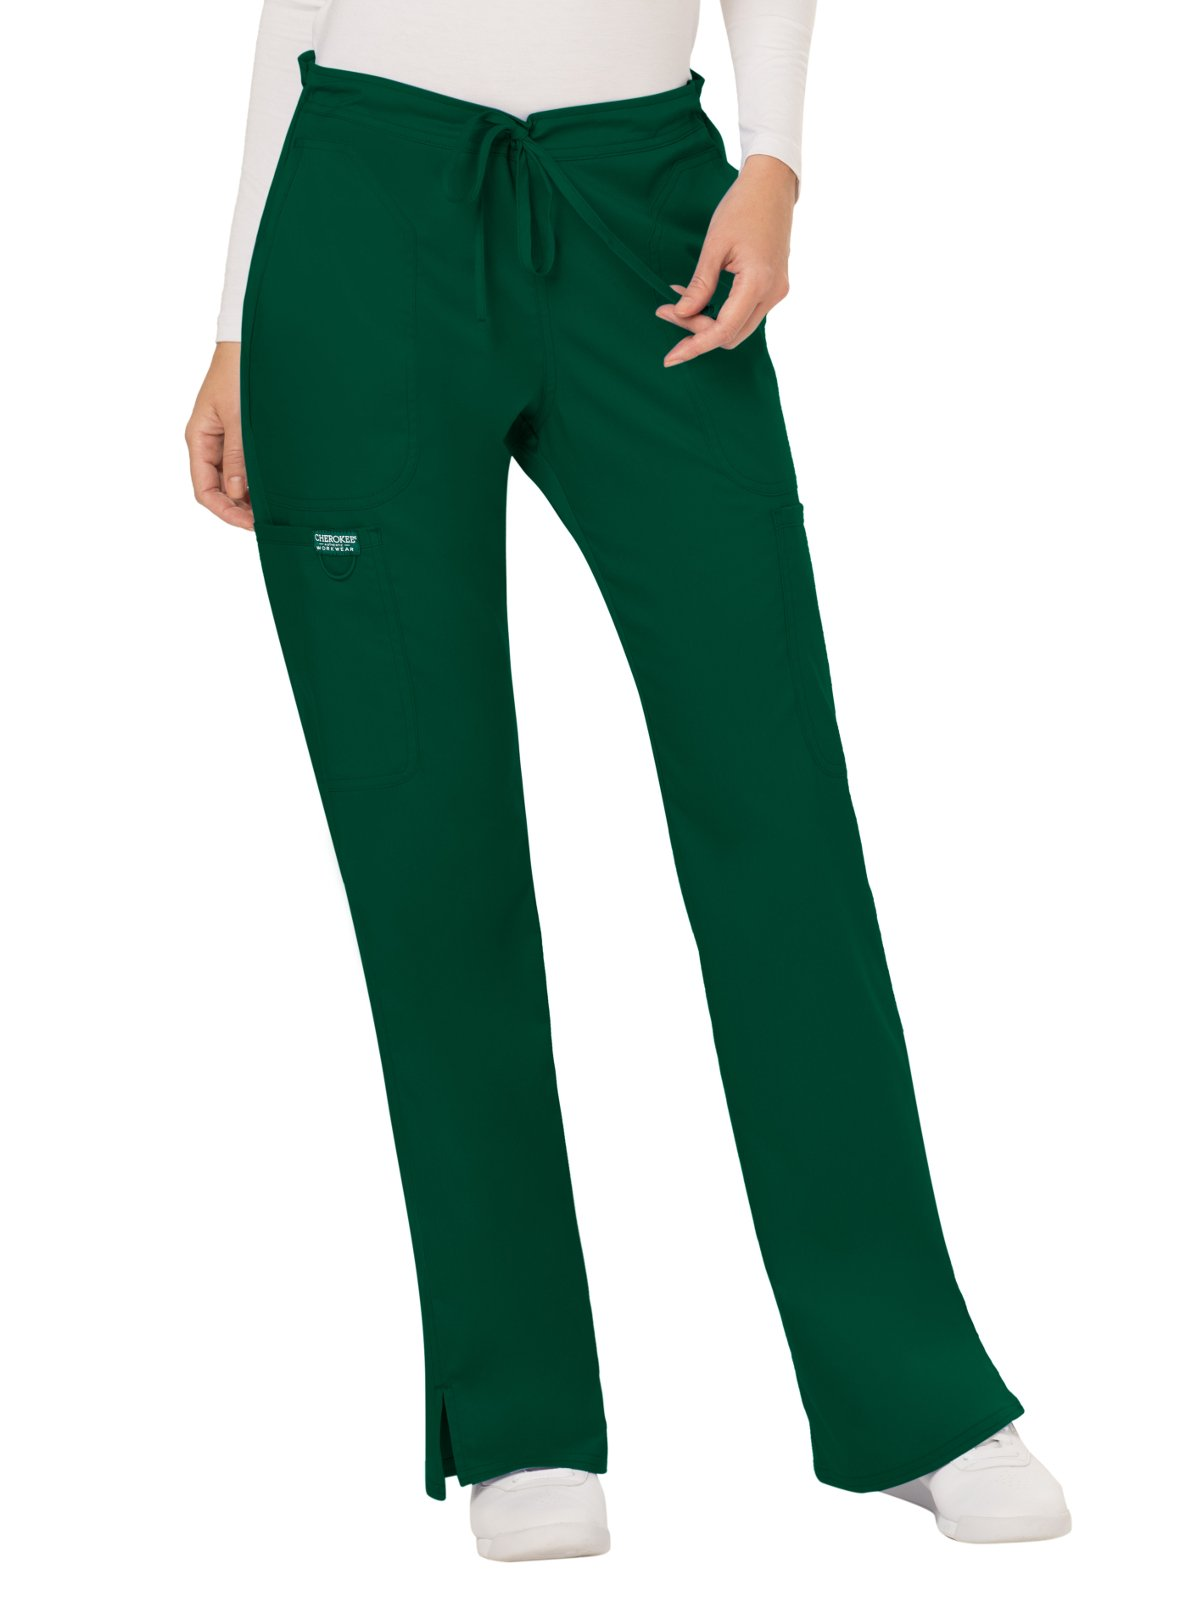 WW Revolution by Cherokee Women's Mid Rise Moderate Flare Drawstring Pant, Hunter Green, 2XL